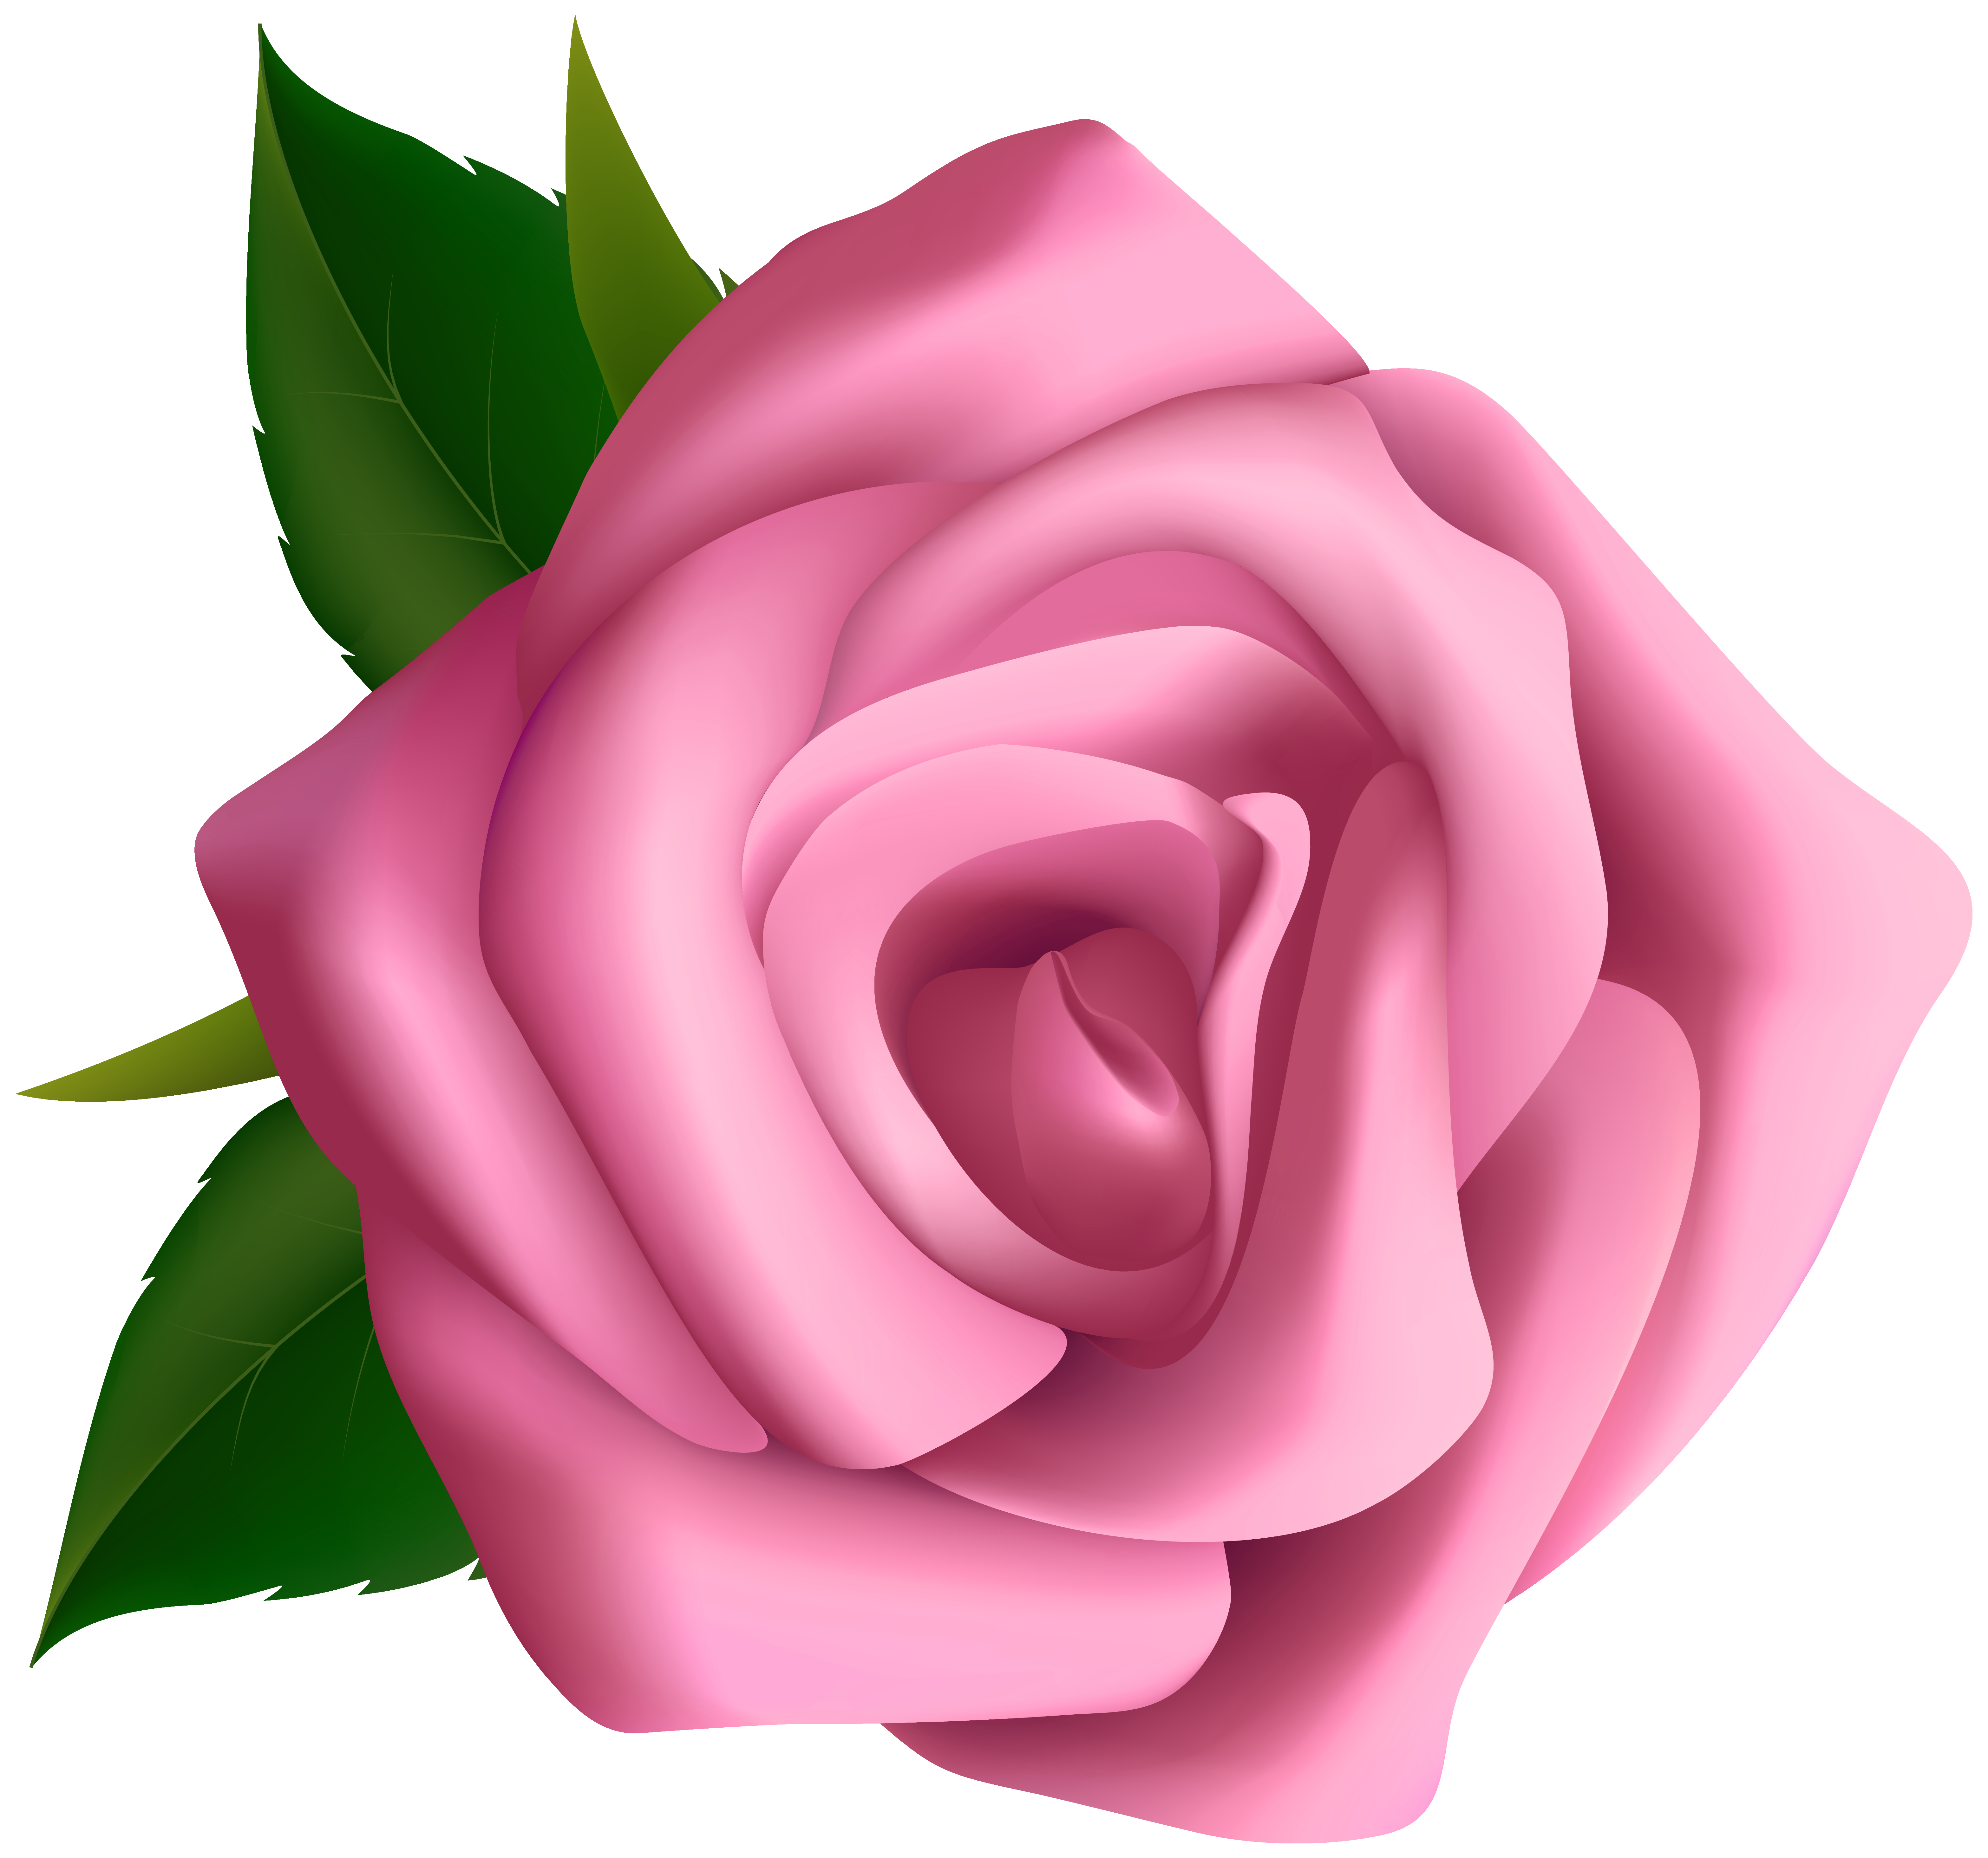 Large pink rose clipart blumen pink roses clip cliparting.